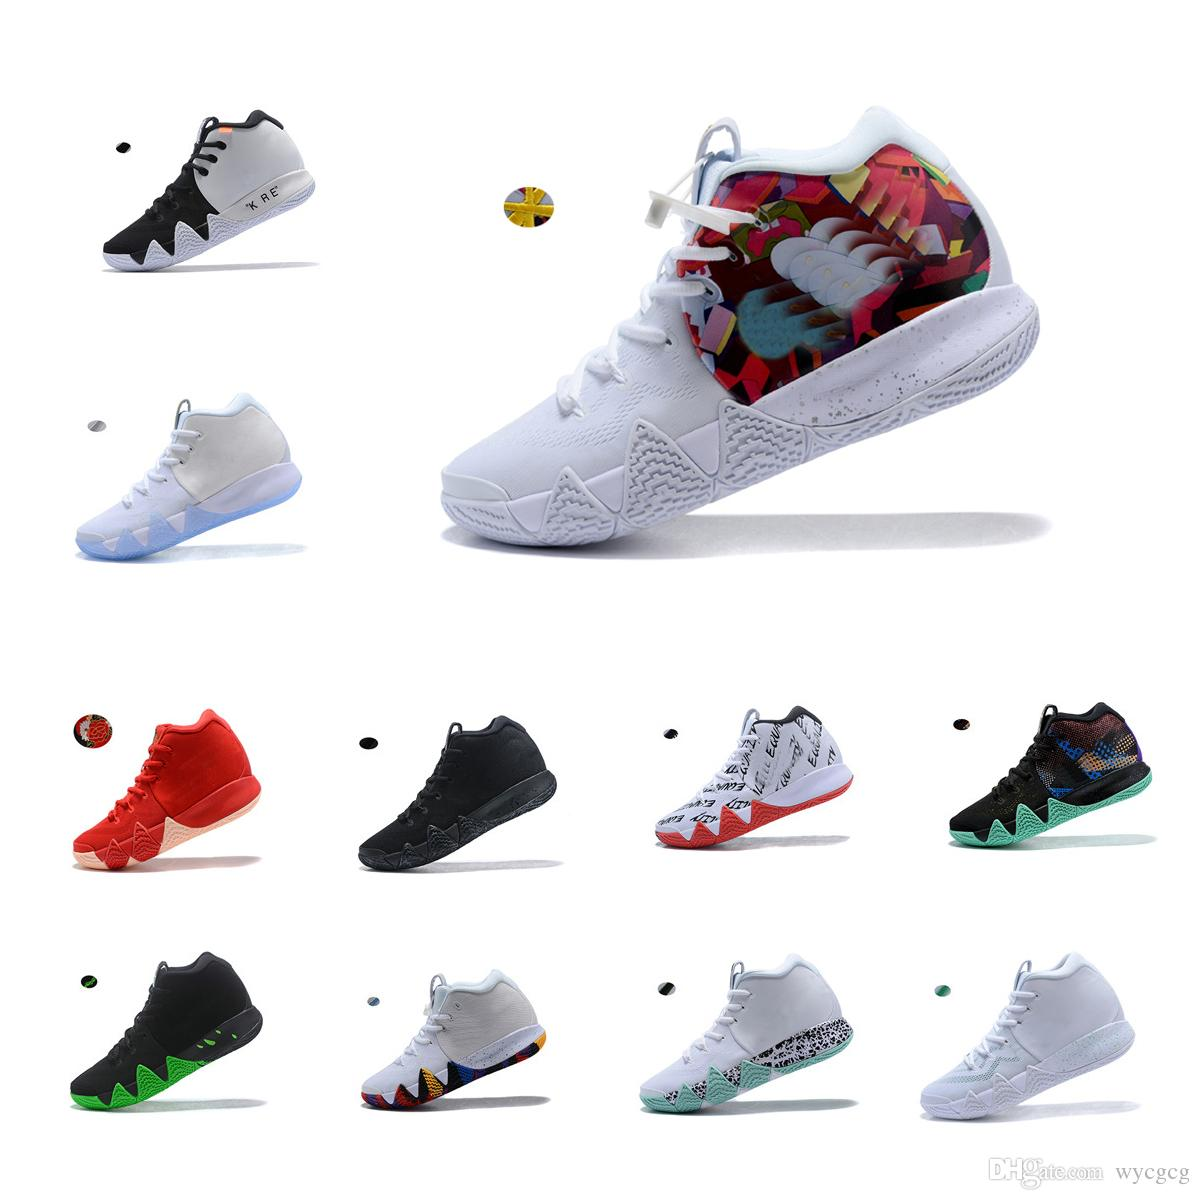 b675b45038552 Acheter NIKE Kyrie Irving Basketball Shoes 4 4s NBA All Star Celtics  Cleveland Cavaliers Uncle Drew Black Warrior Maple Leaf Joint Style Black  And White ...